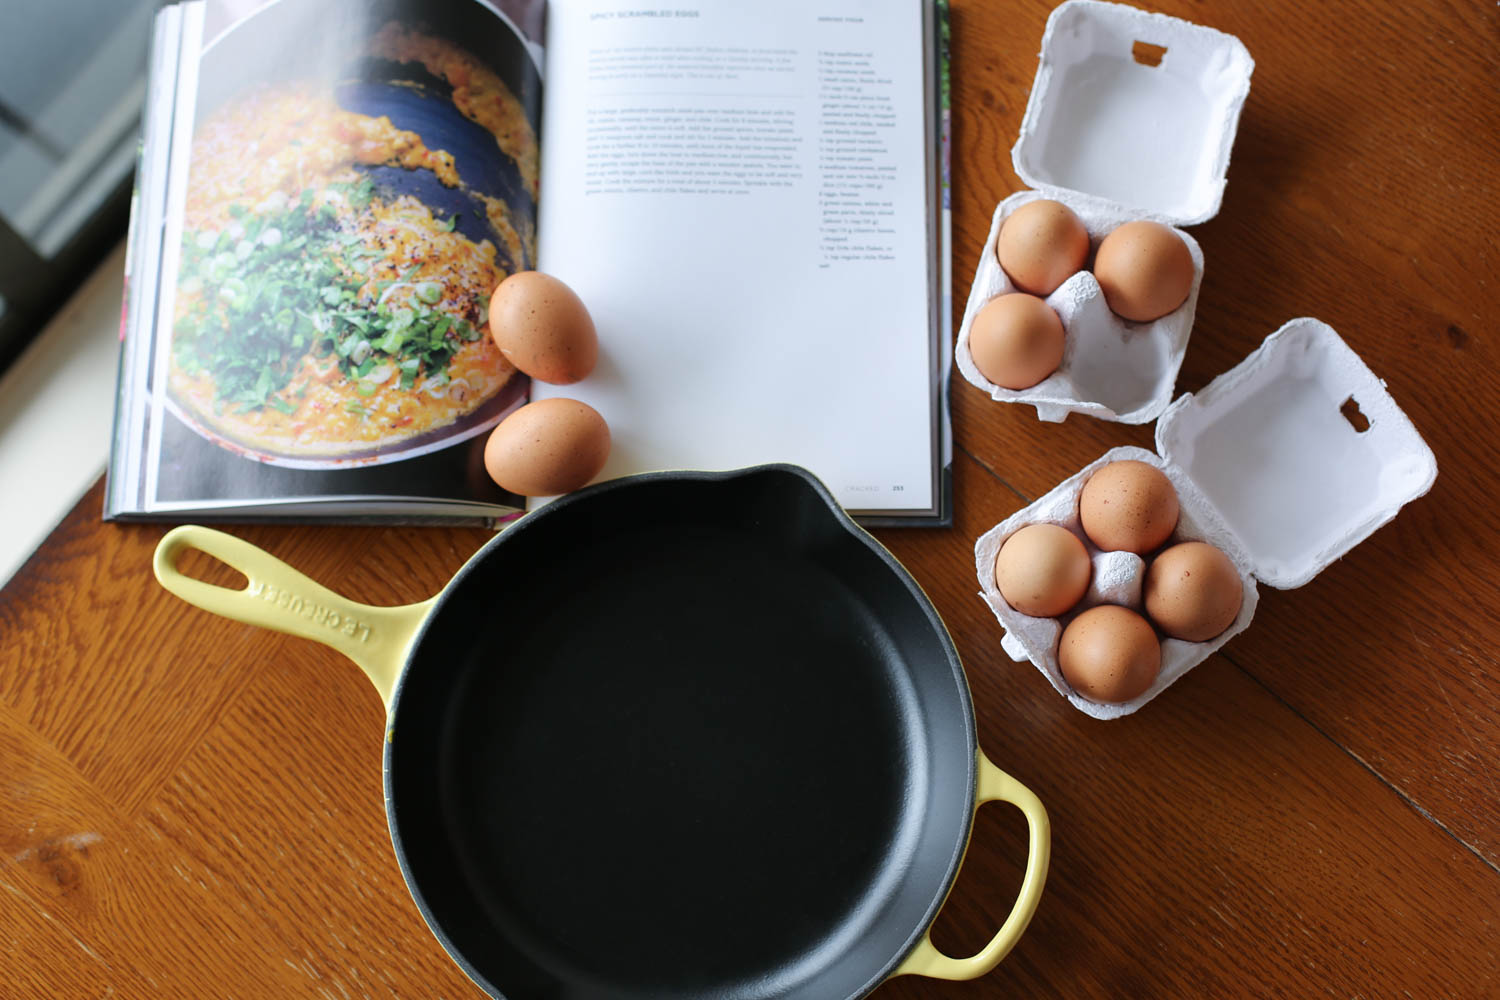 Making egg recipes using eggs from my hens. Pictured: Le Creuset 10